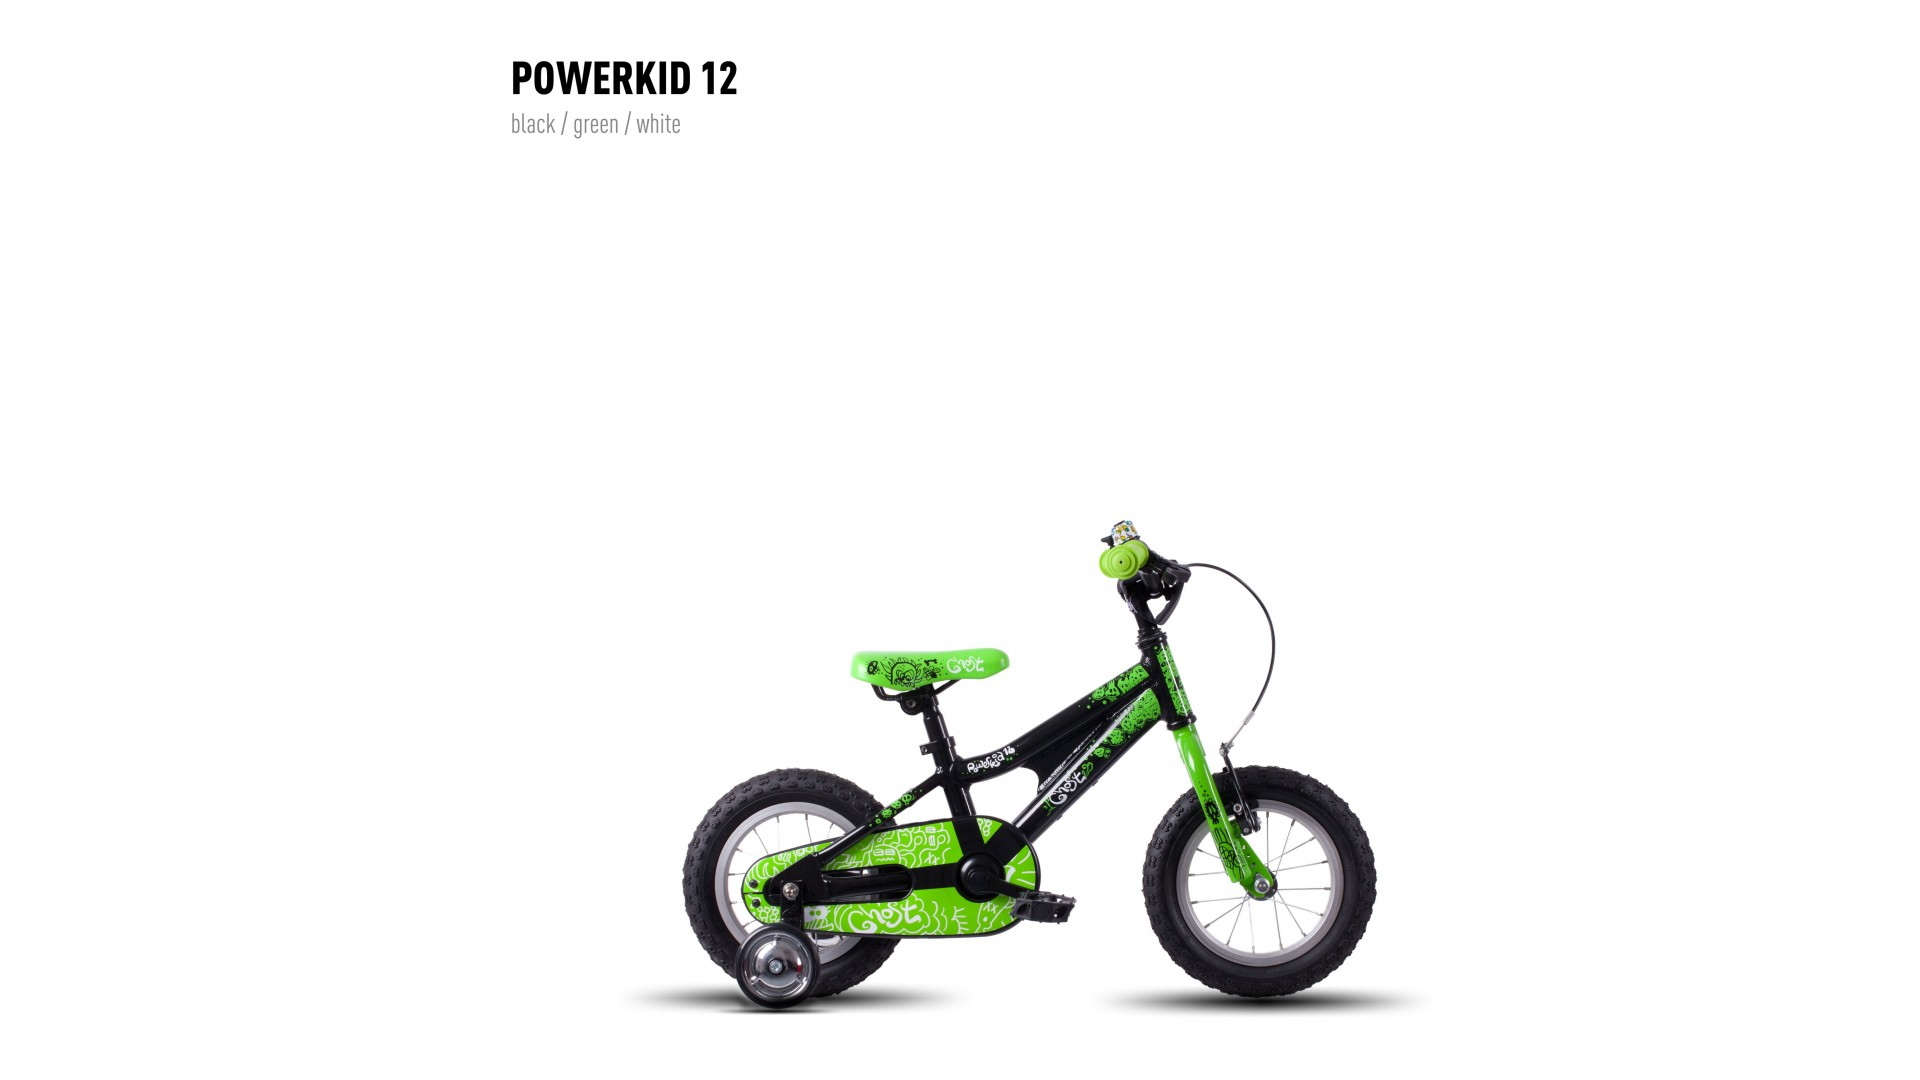 Велосипед GHOST Powerkiddy 12 black/green/white год 2016